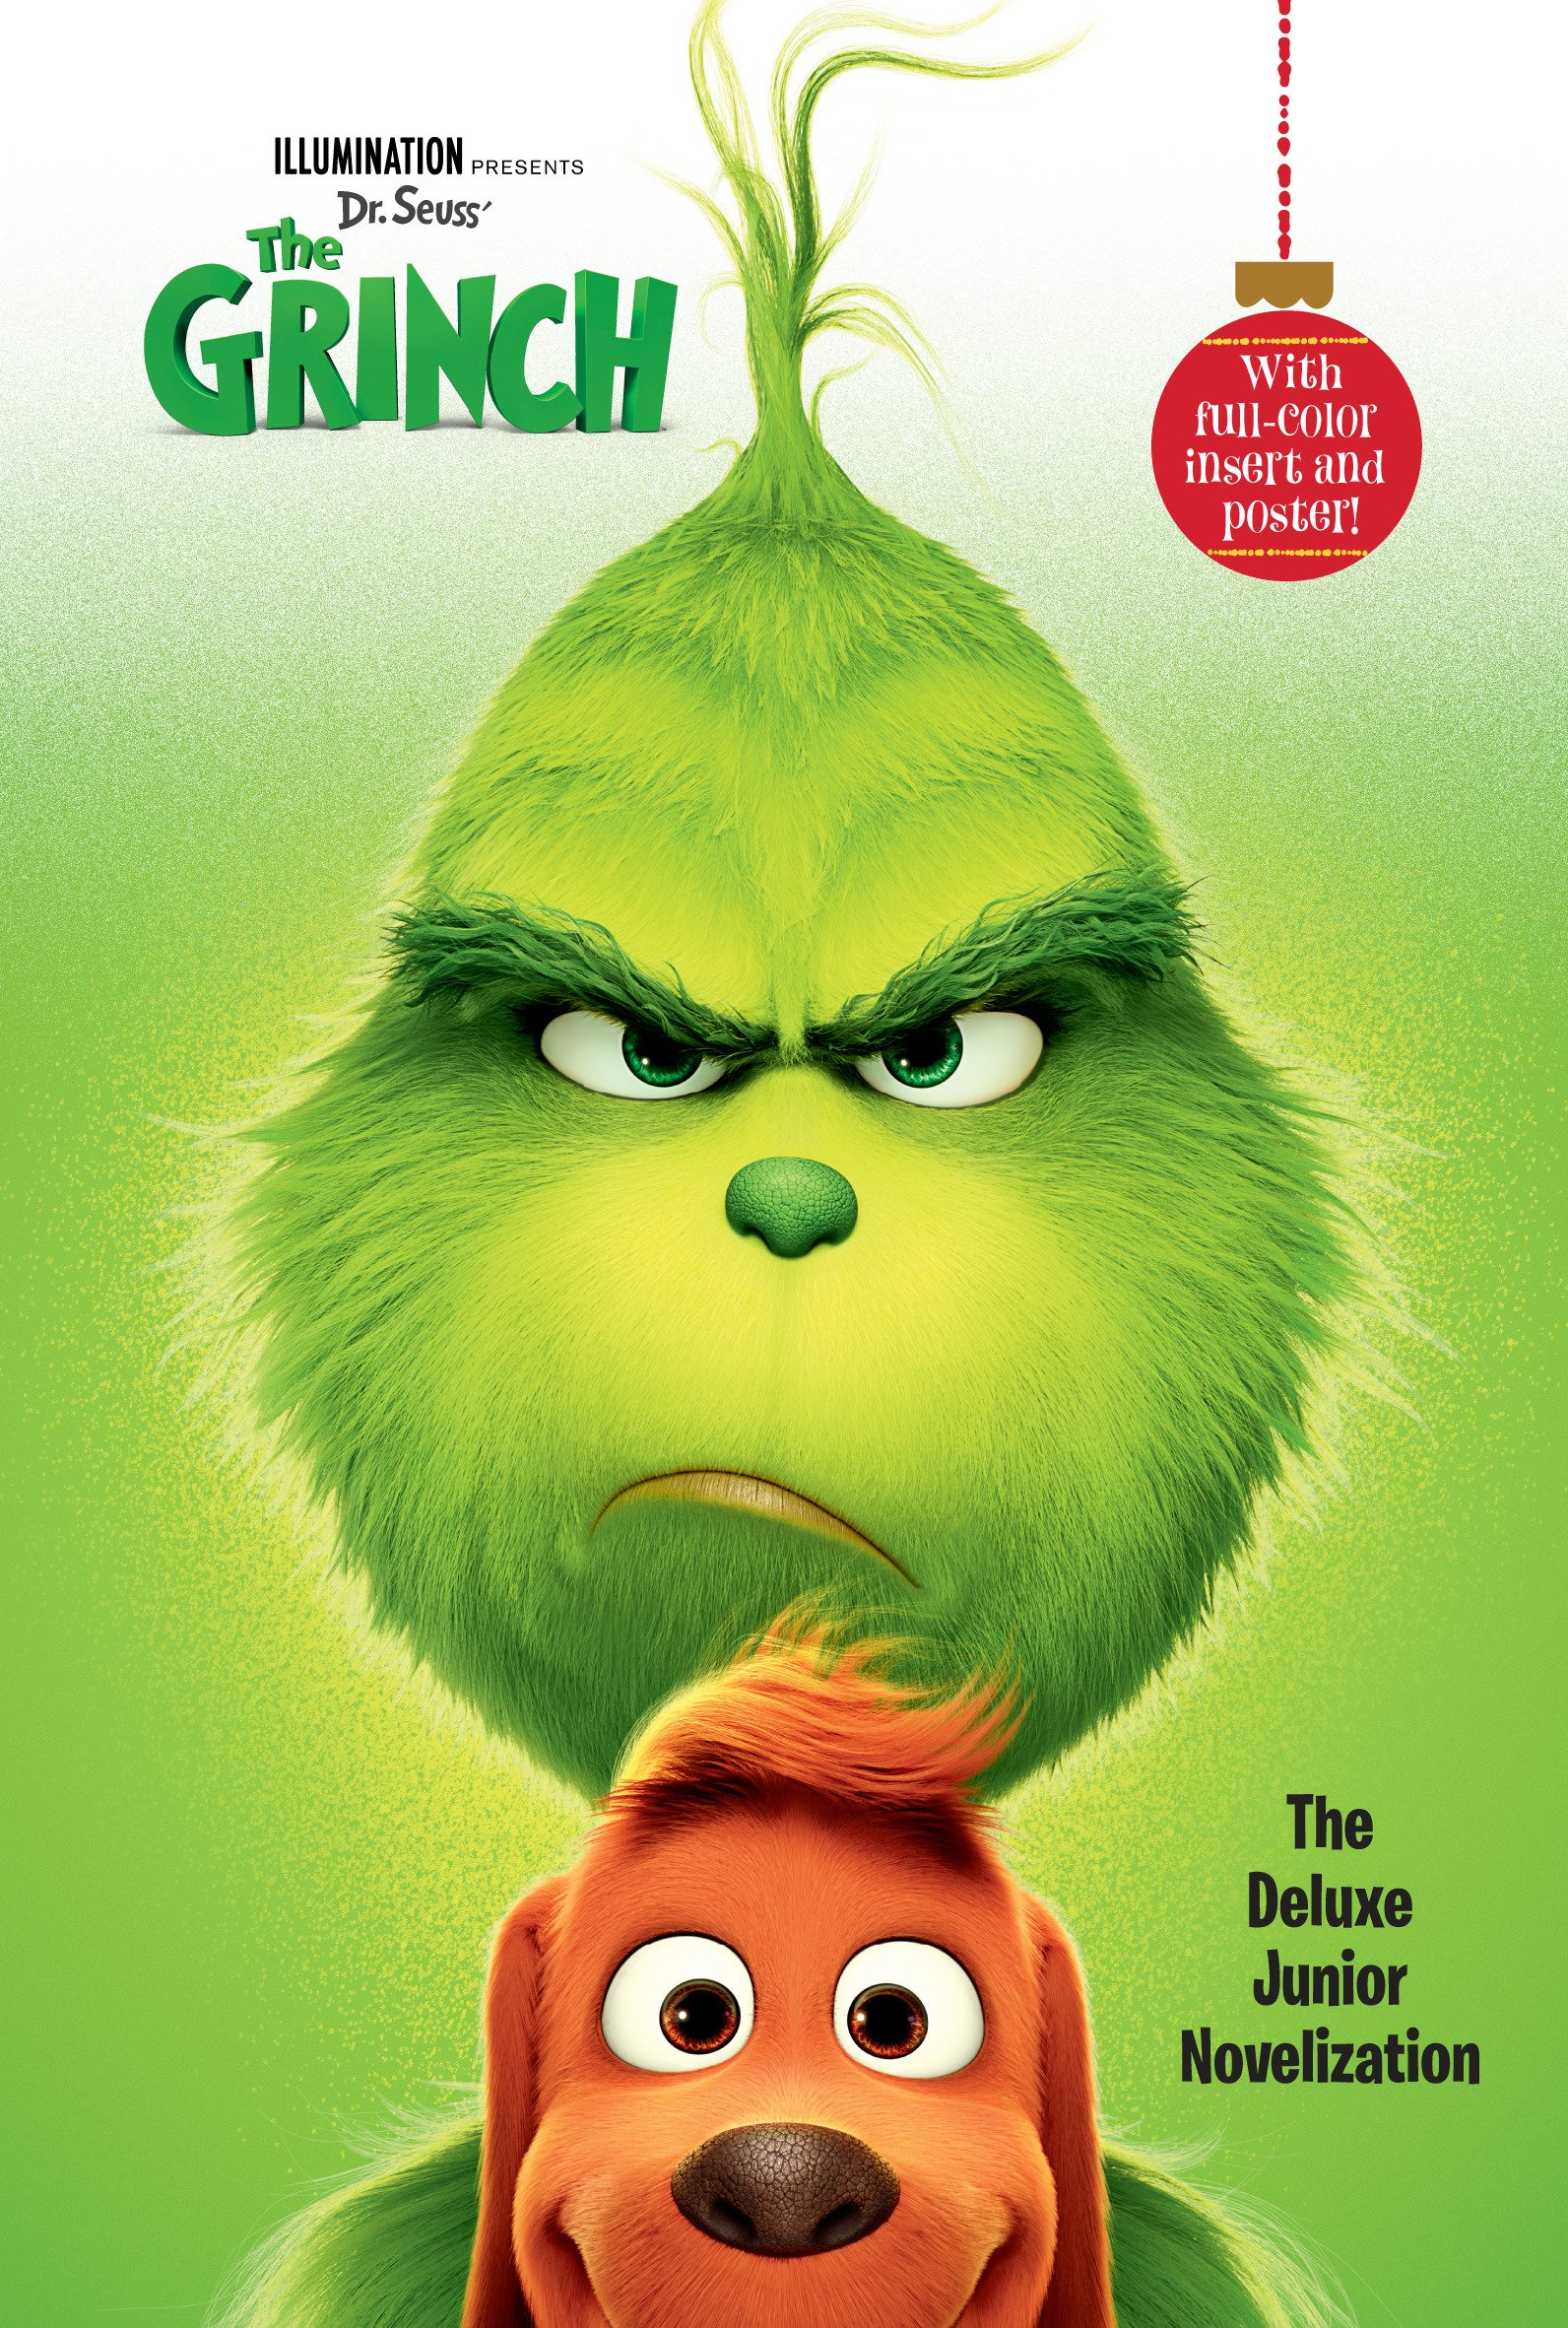 Illumination Presents Dr Seuss The Grinch The Deluxe